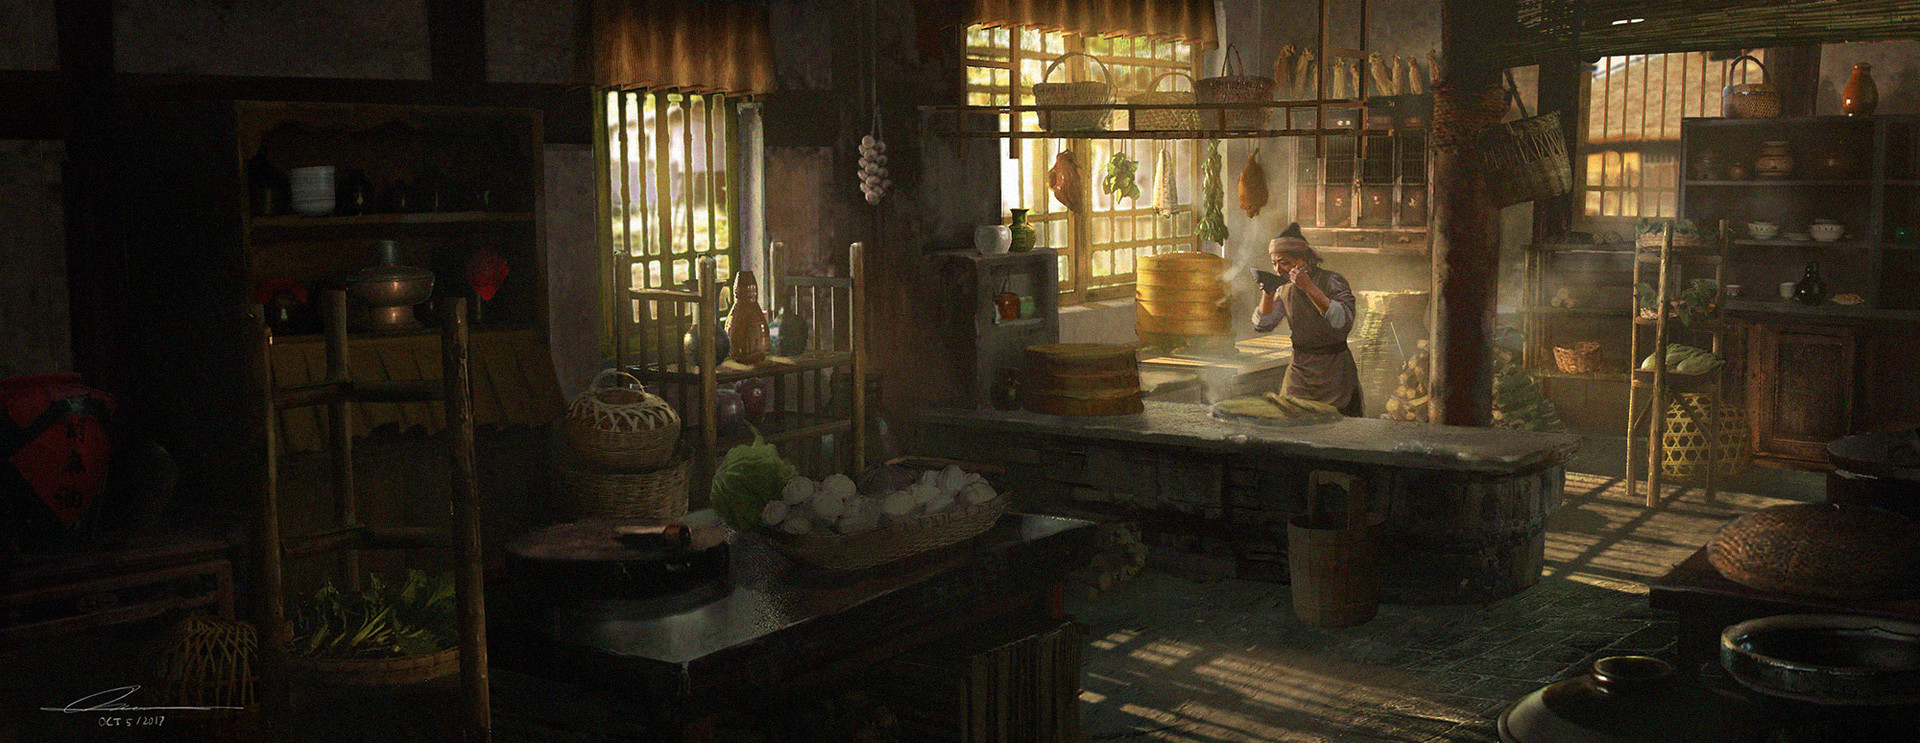 A Chefu0027s Day In An Ancient Chinese Kitchen